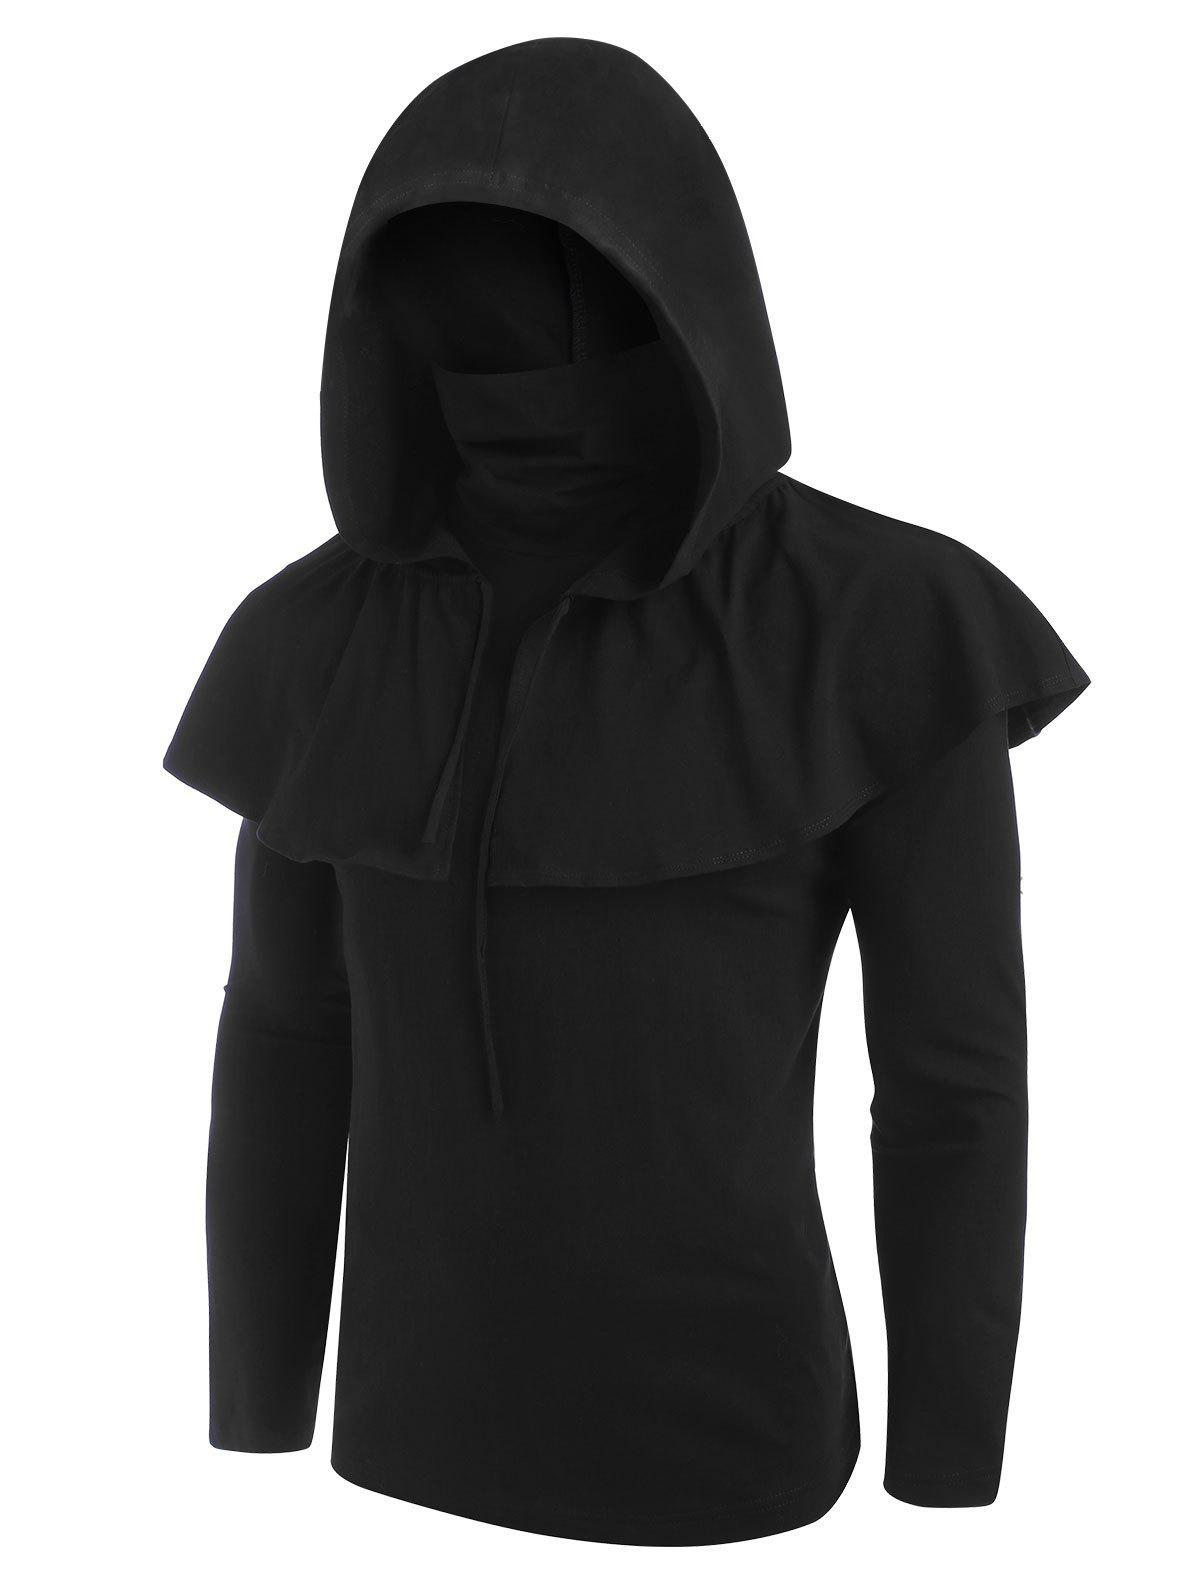 Gothic Hooded Cape and Mask Top Two Piece Sets - BLACK M